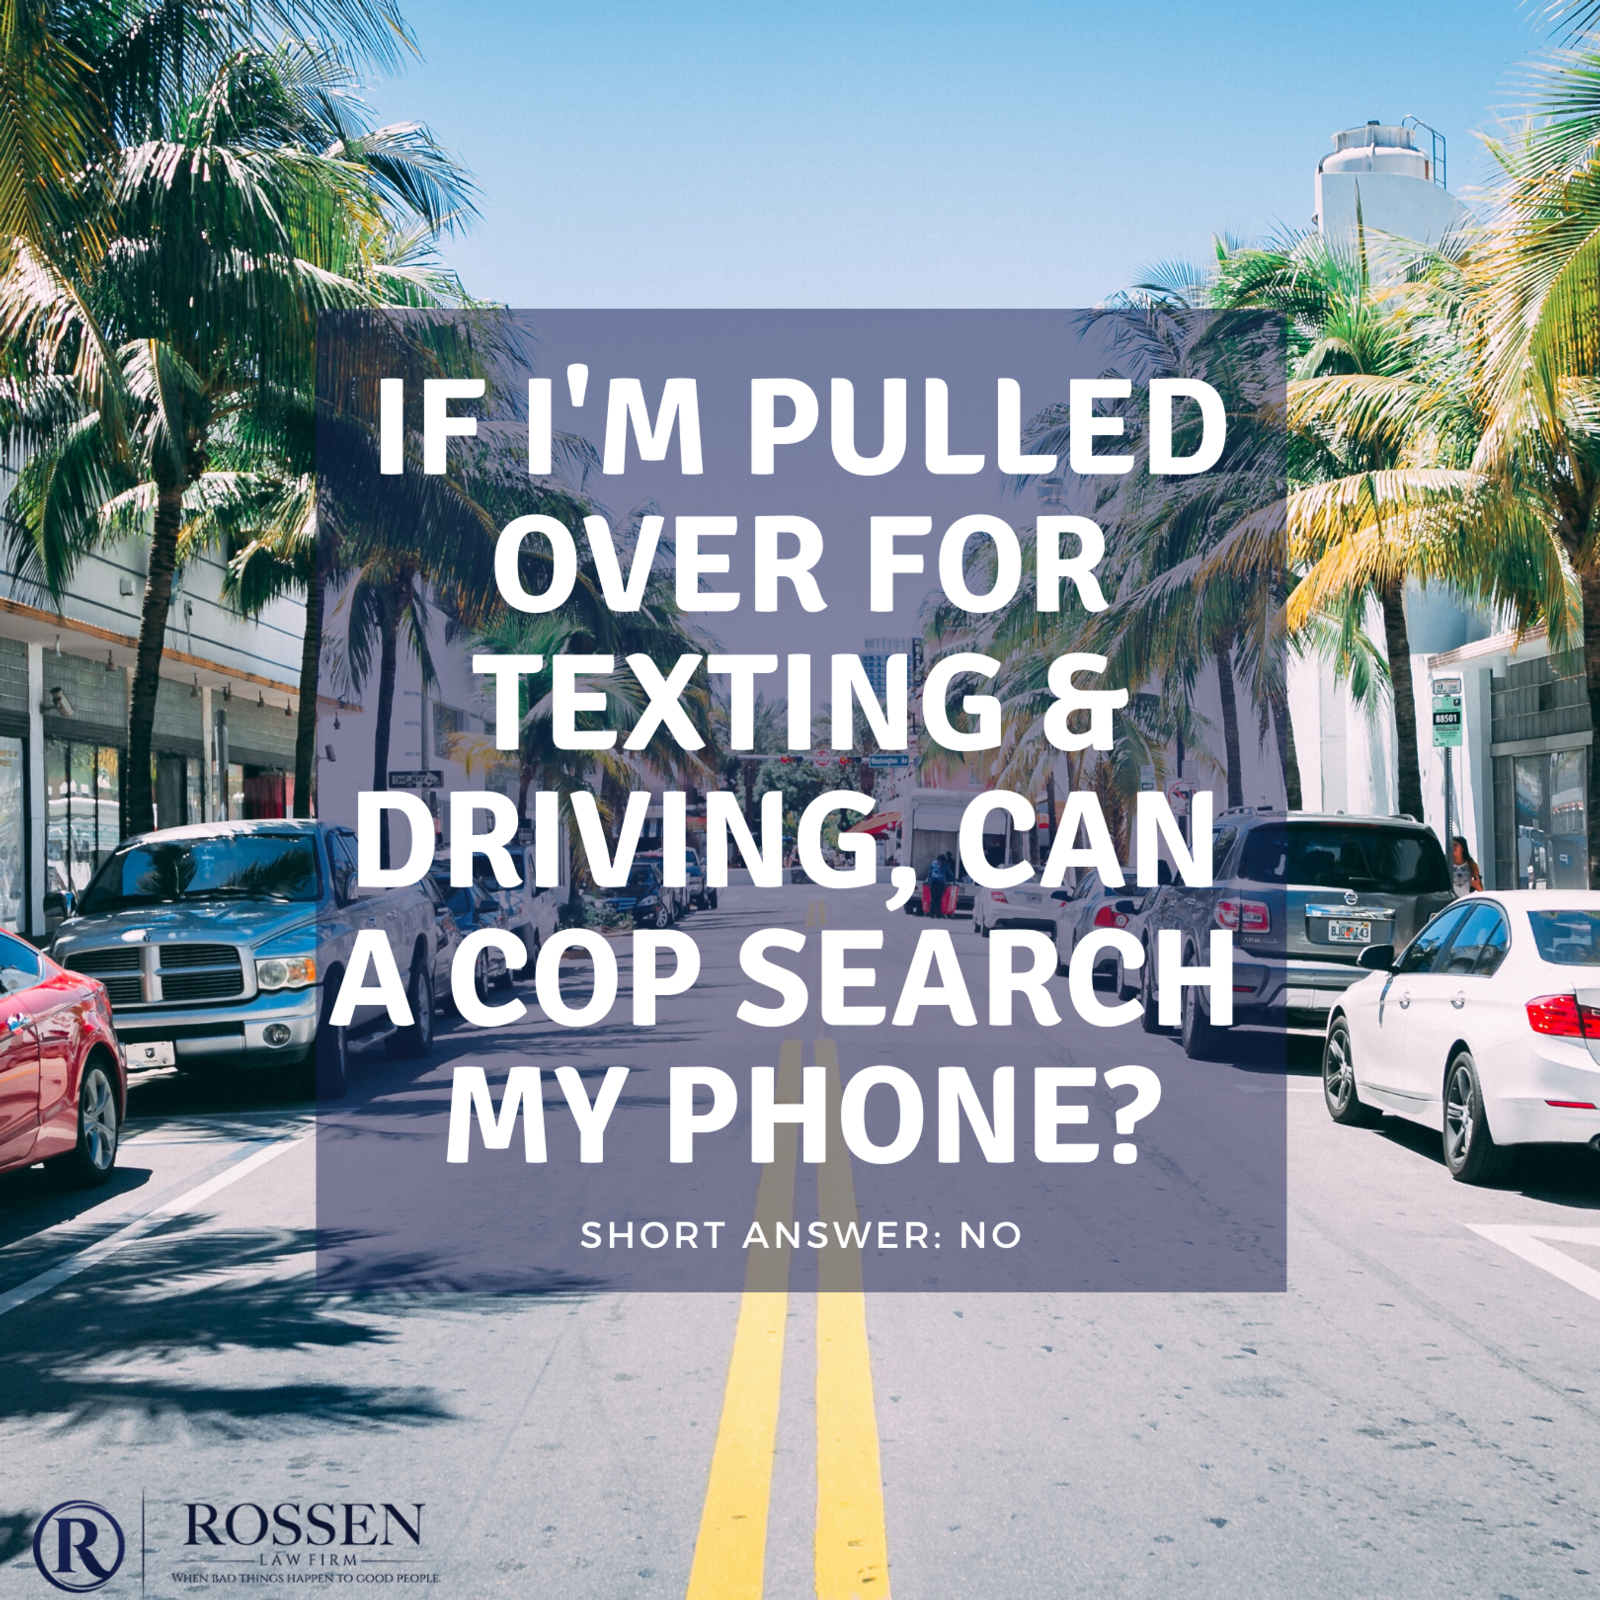 Image reads: If I'm pulled over for texting and driving, can a cop search my phone?